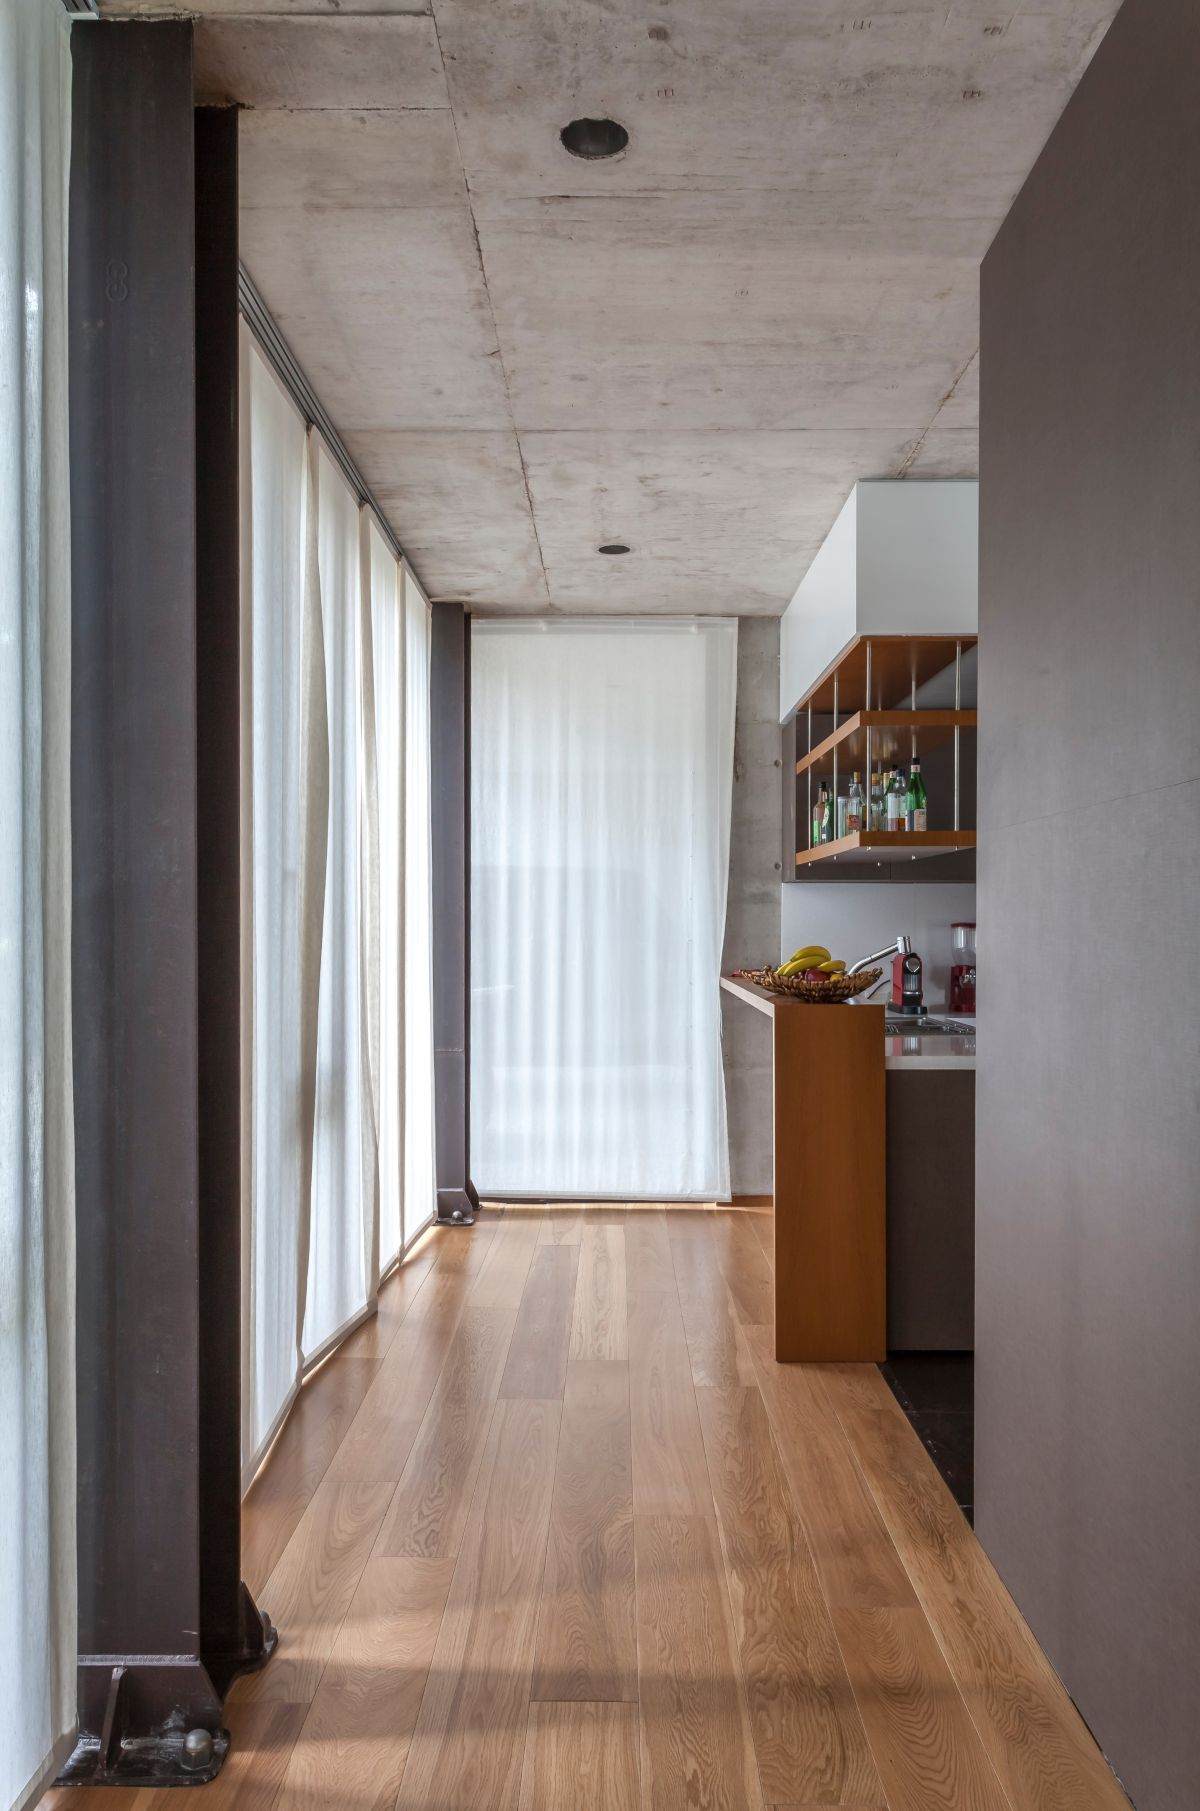 The hall to the kitchen offers a look at the various design details.